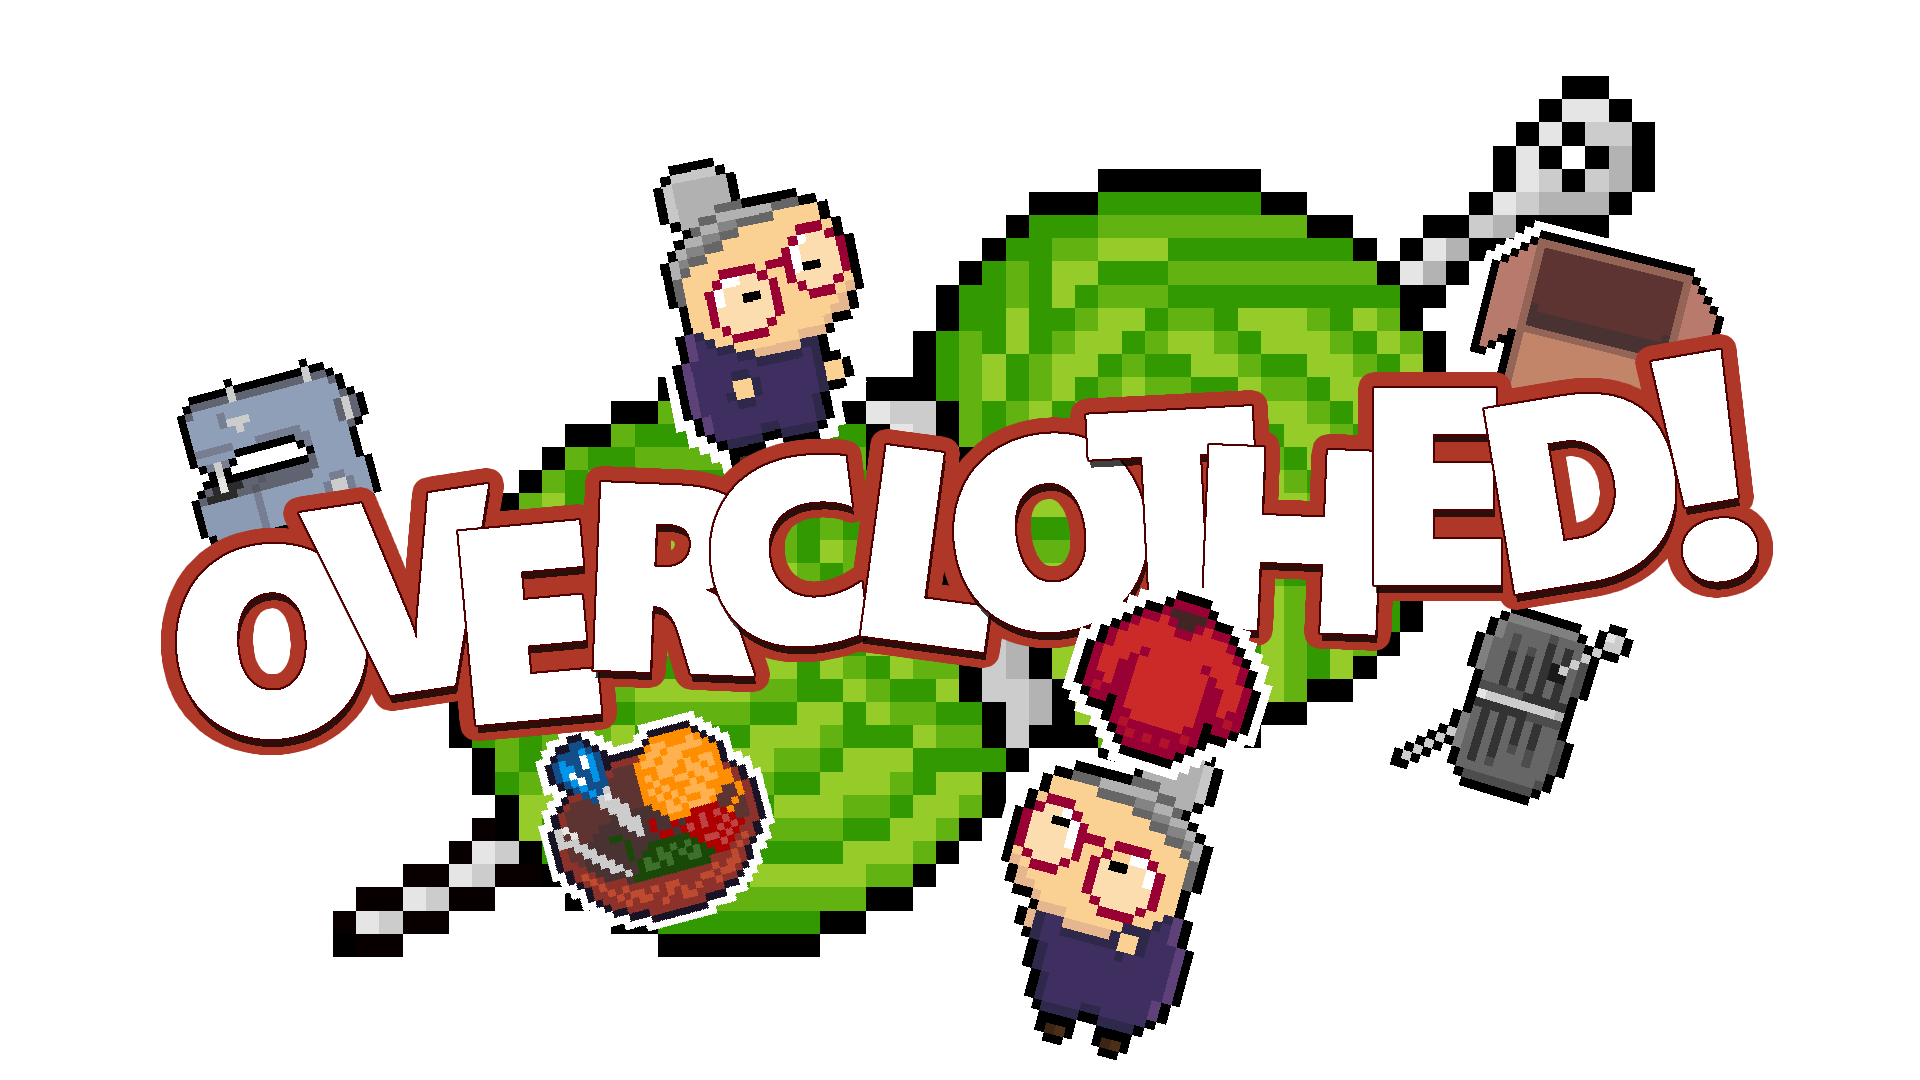 Overclothed - An IndieDevDay 2 Game Jam entry